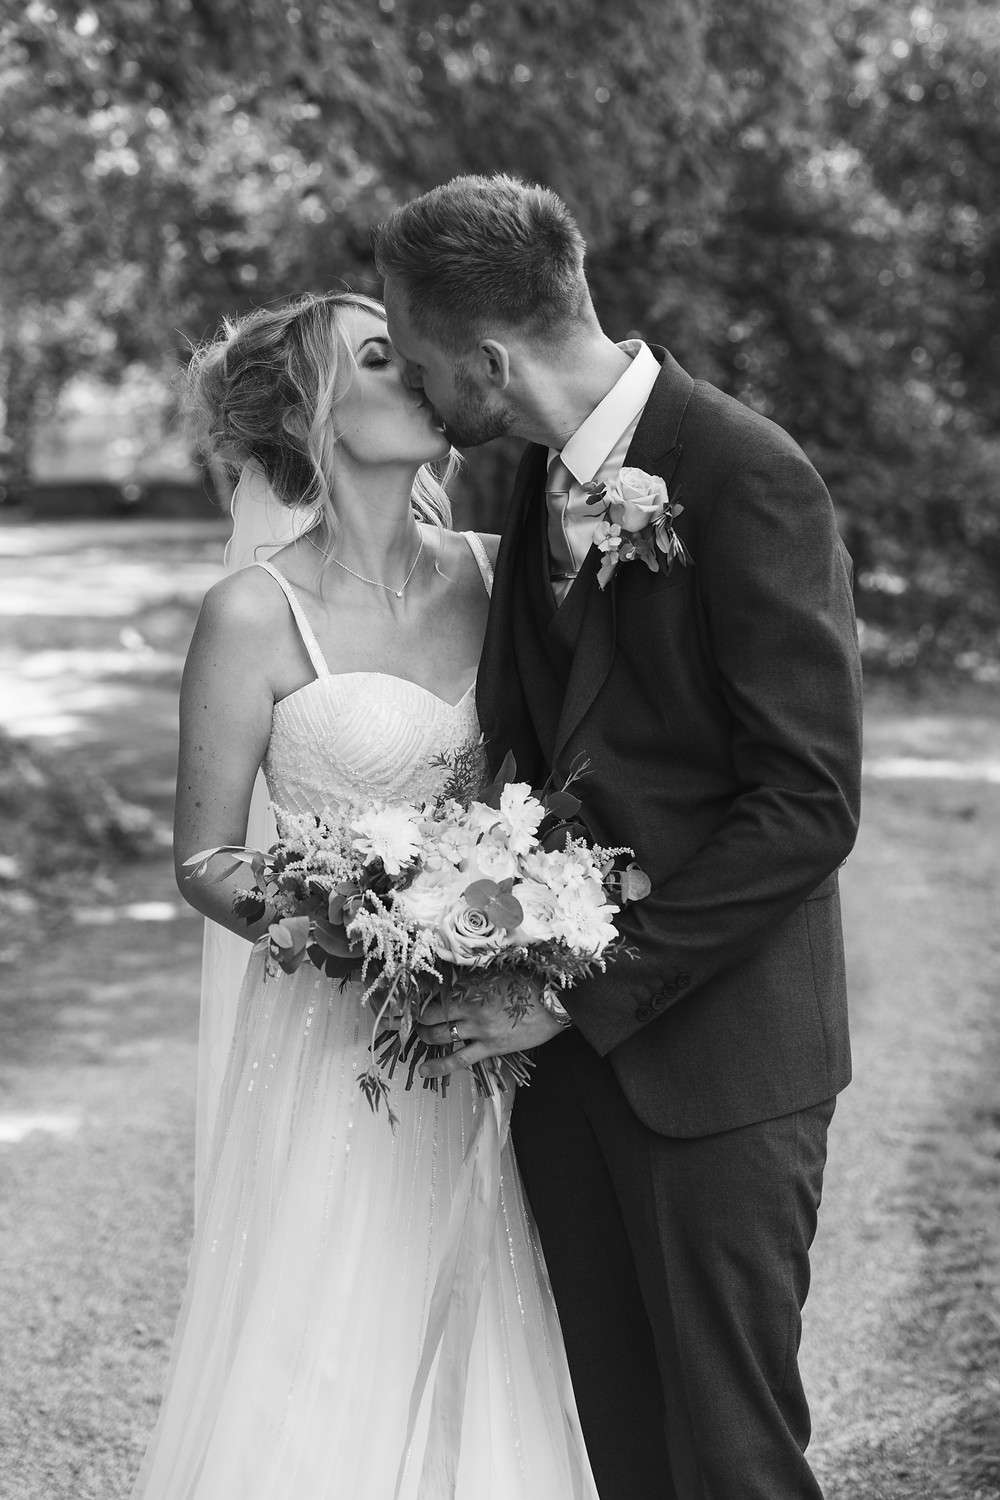 By North Yorkshire Wedding photogrpaher